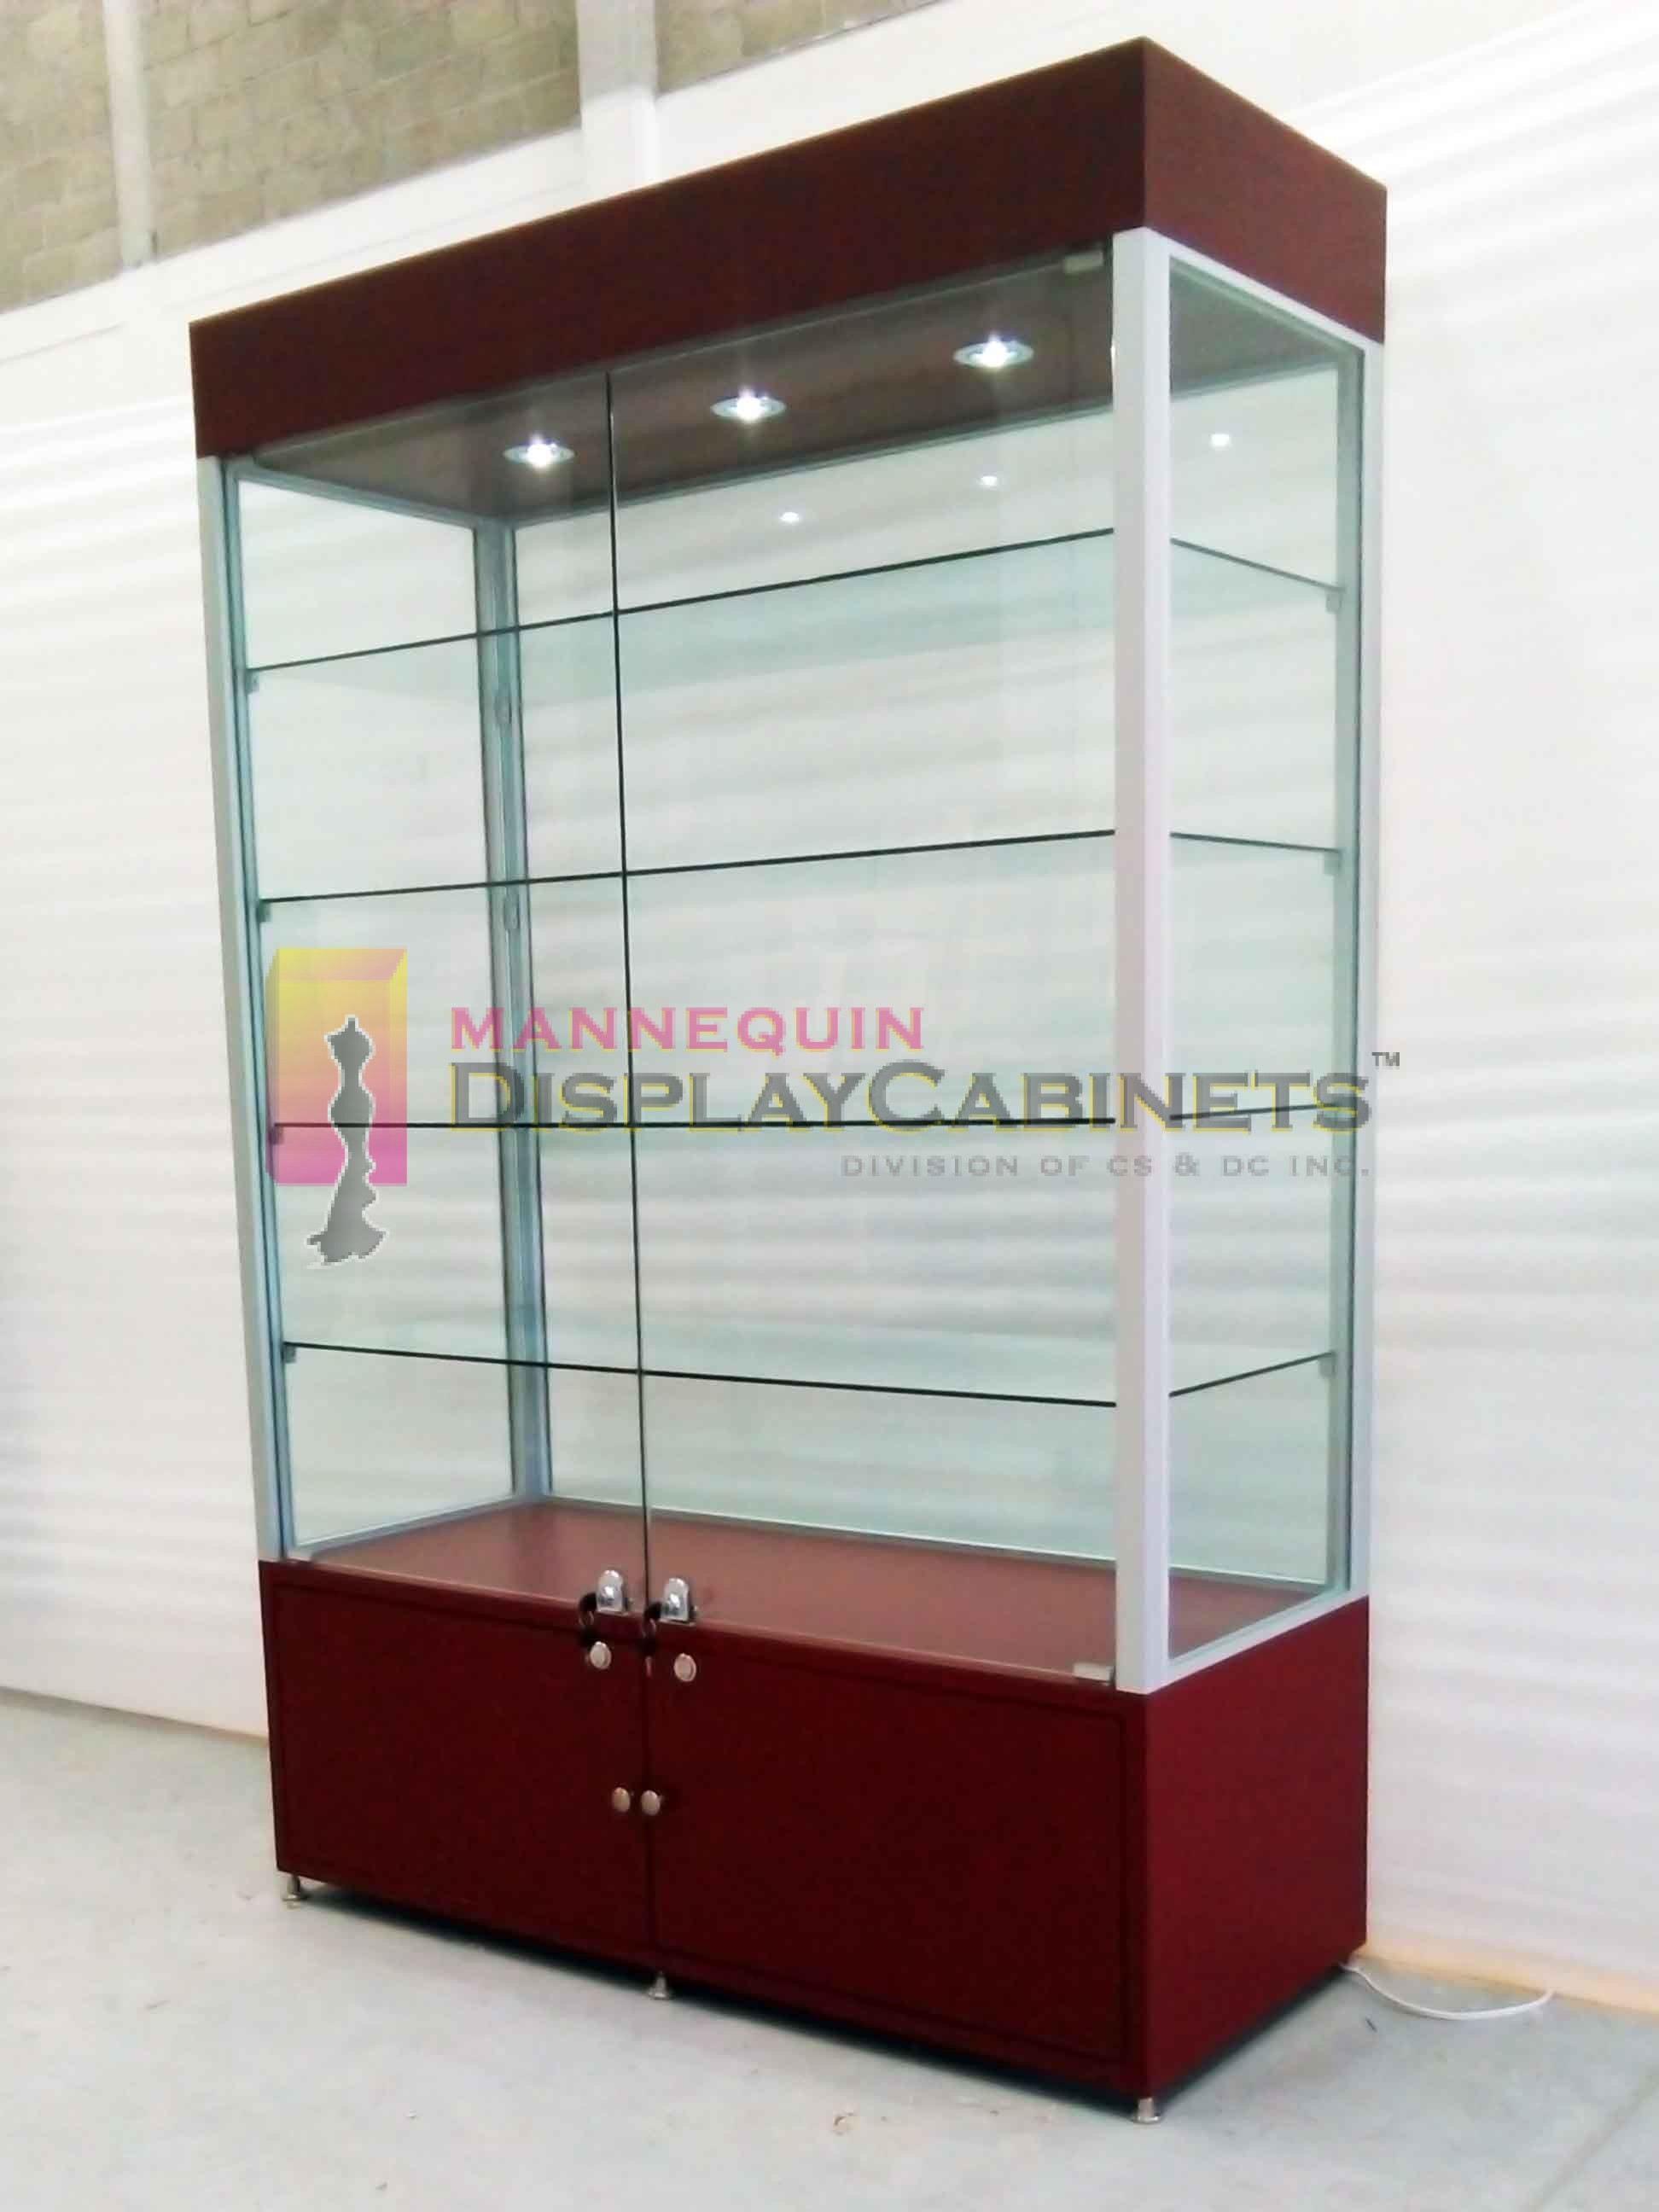 Free Standing Display Cabinets Mannequin Within Size 1944 X 2592